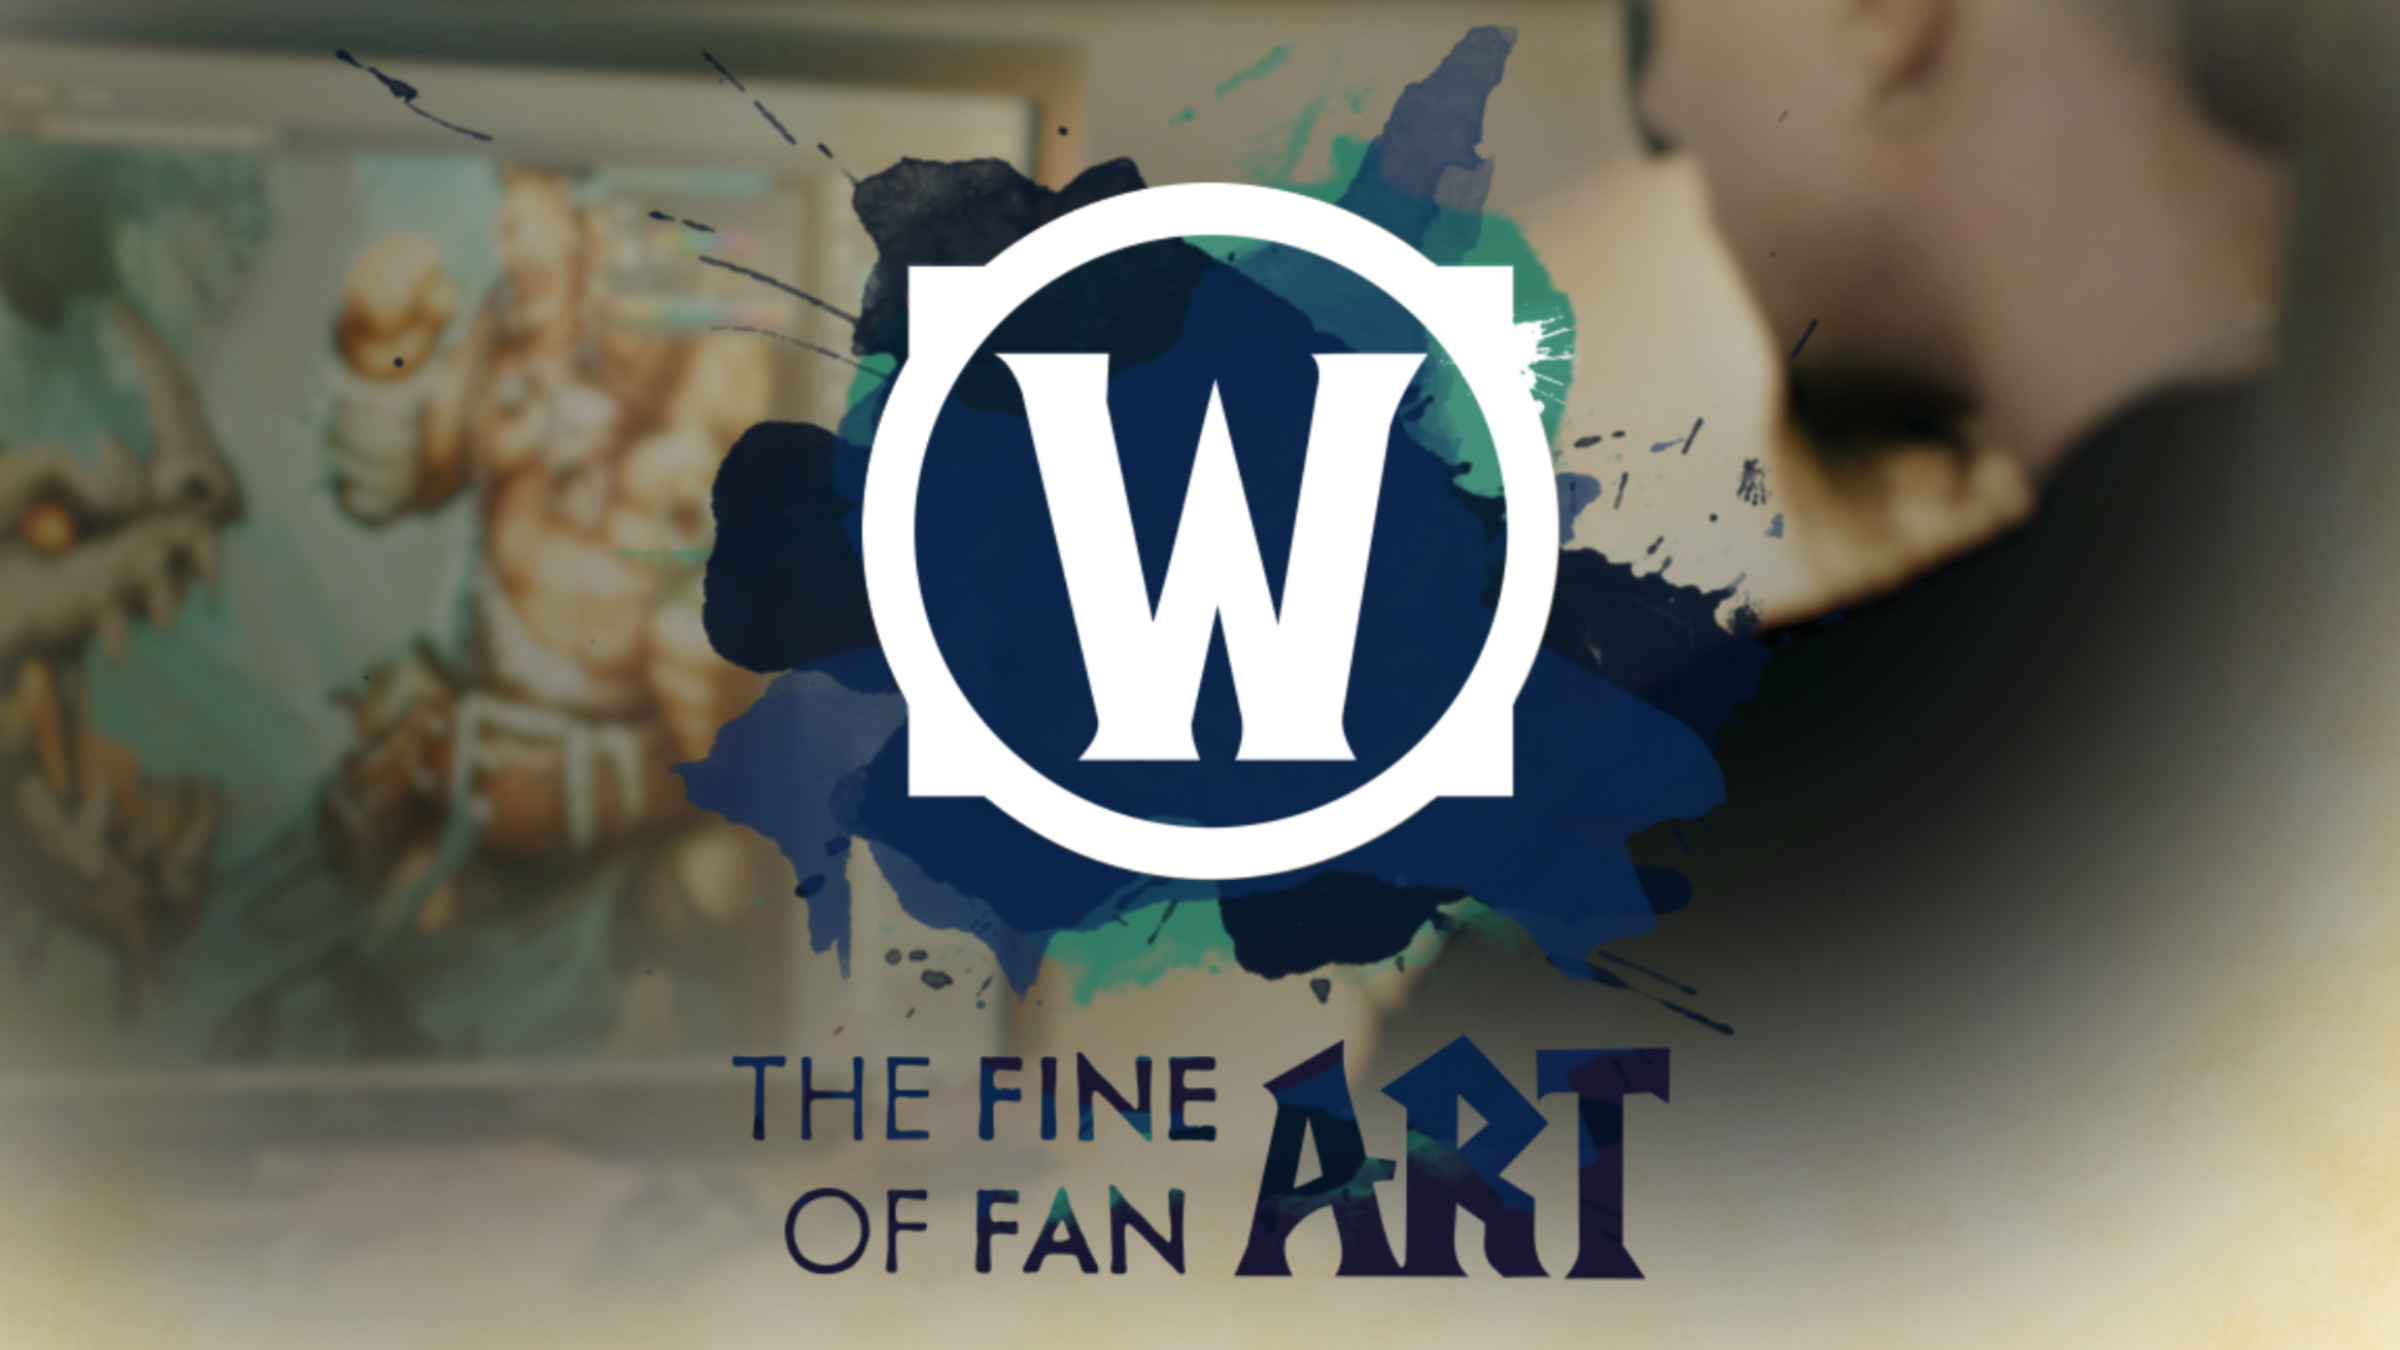 Celebrate WoW Community Creations with The Fine Art of Fan Art (episode #1)